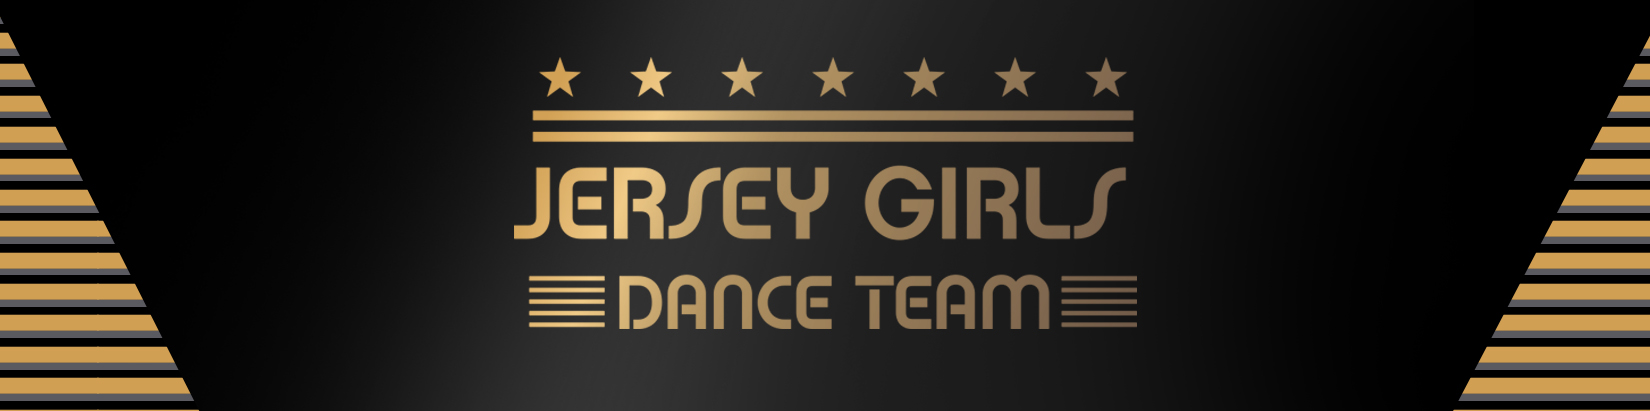 Jersey Girls Dance